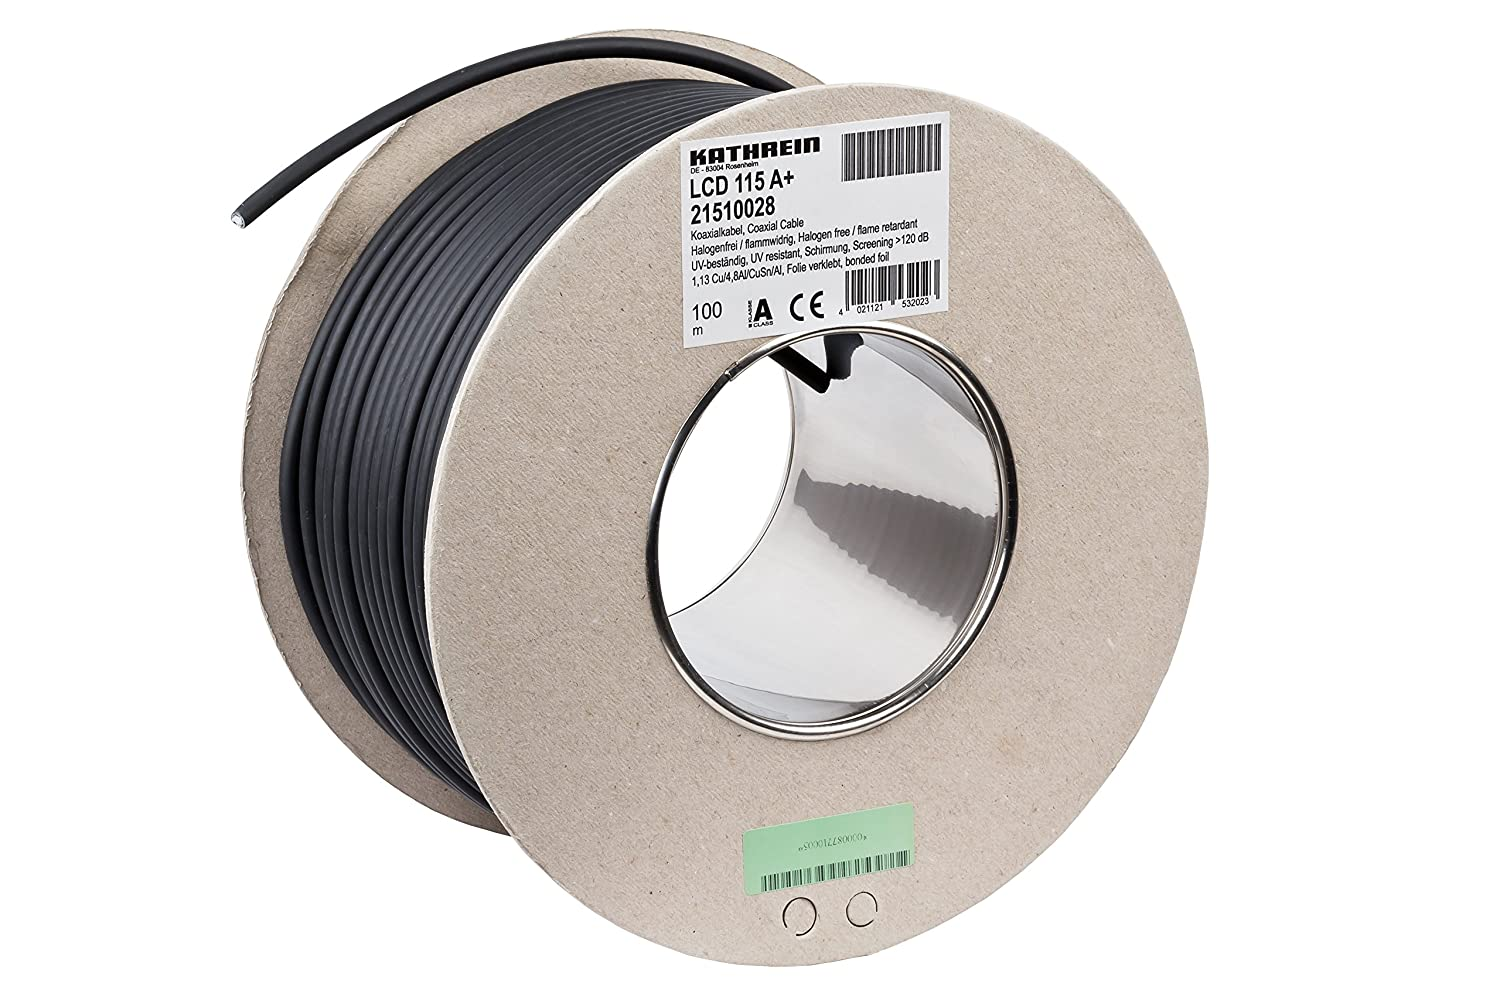 Kathrein LCD 115 A+ - Cable coaxial (100 m, Negro, 75 Ω, Cobre, -25 ...